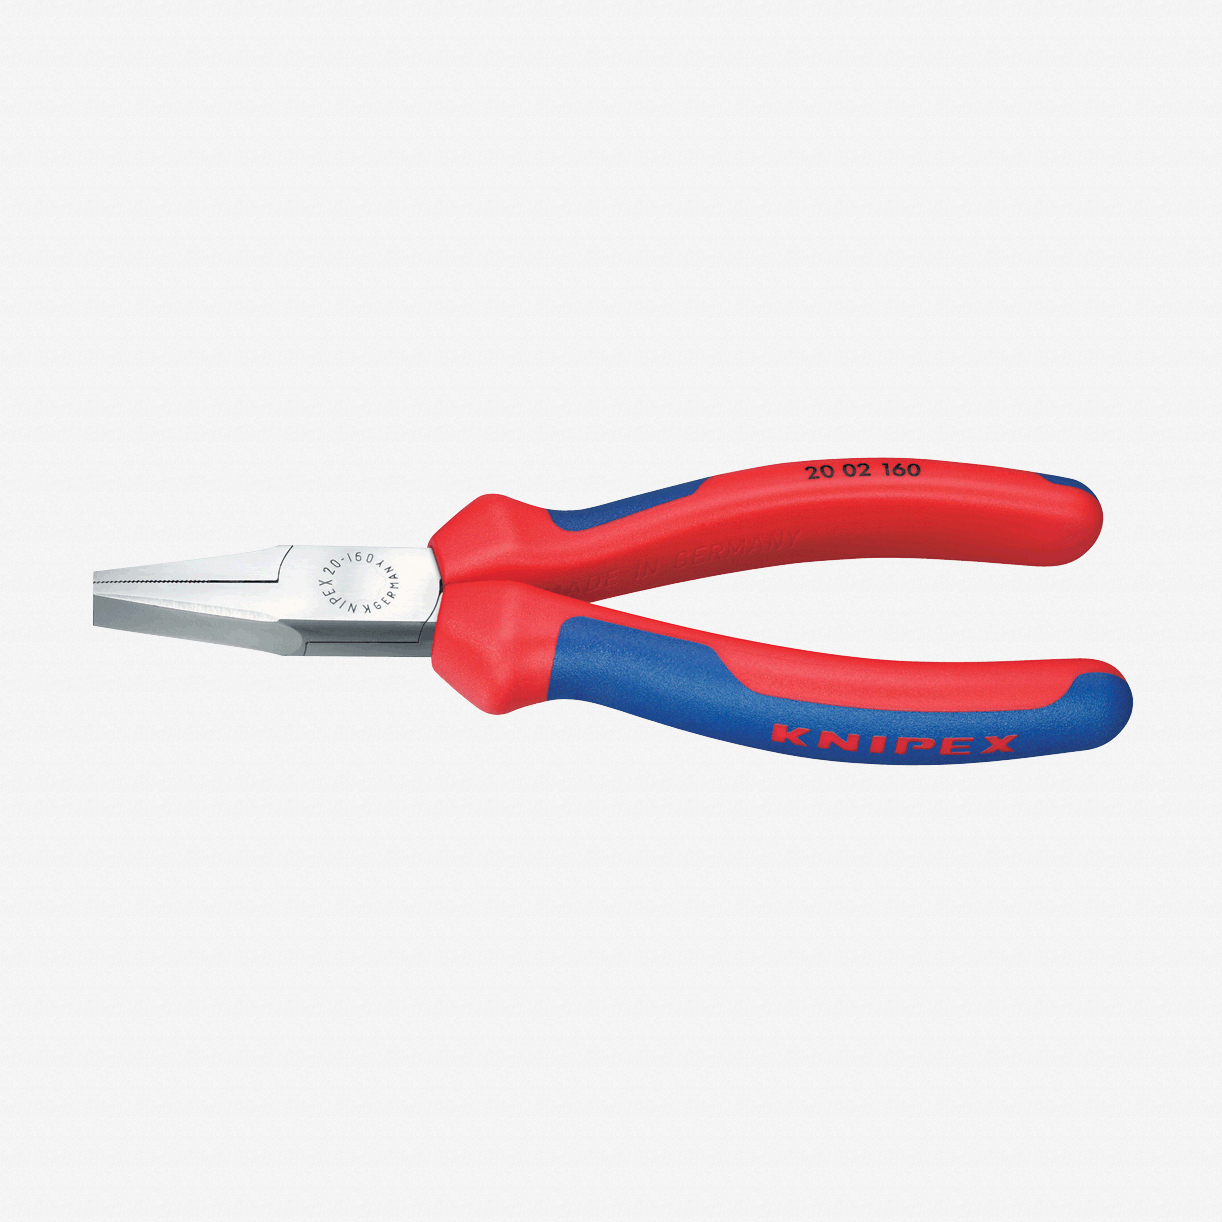 "Knipex 20-02-160 6.3"" Flat Nose Pliers - MultiGrip - KC Tool"